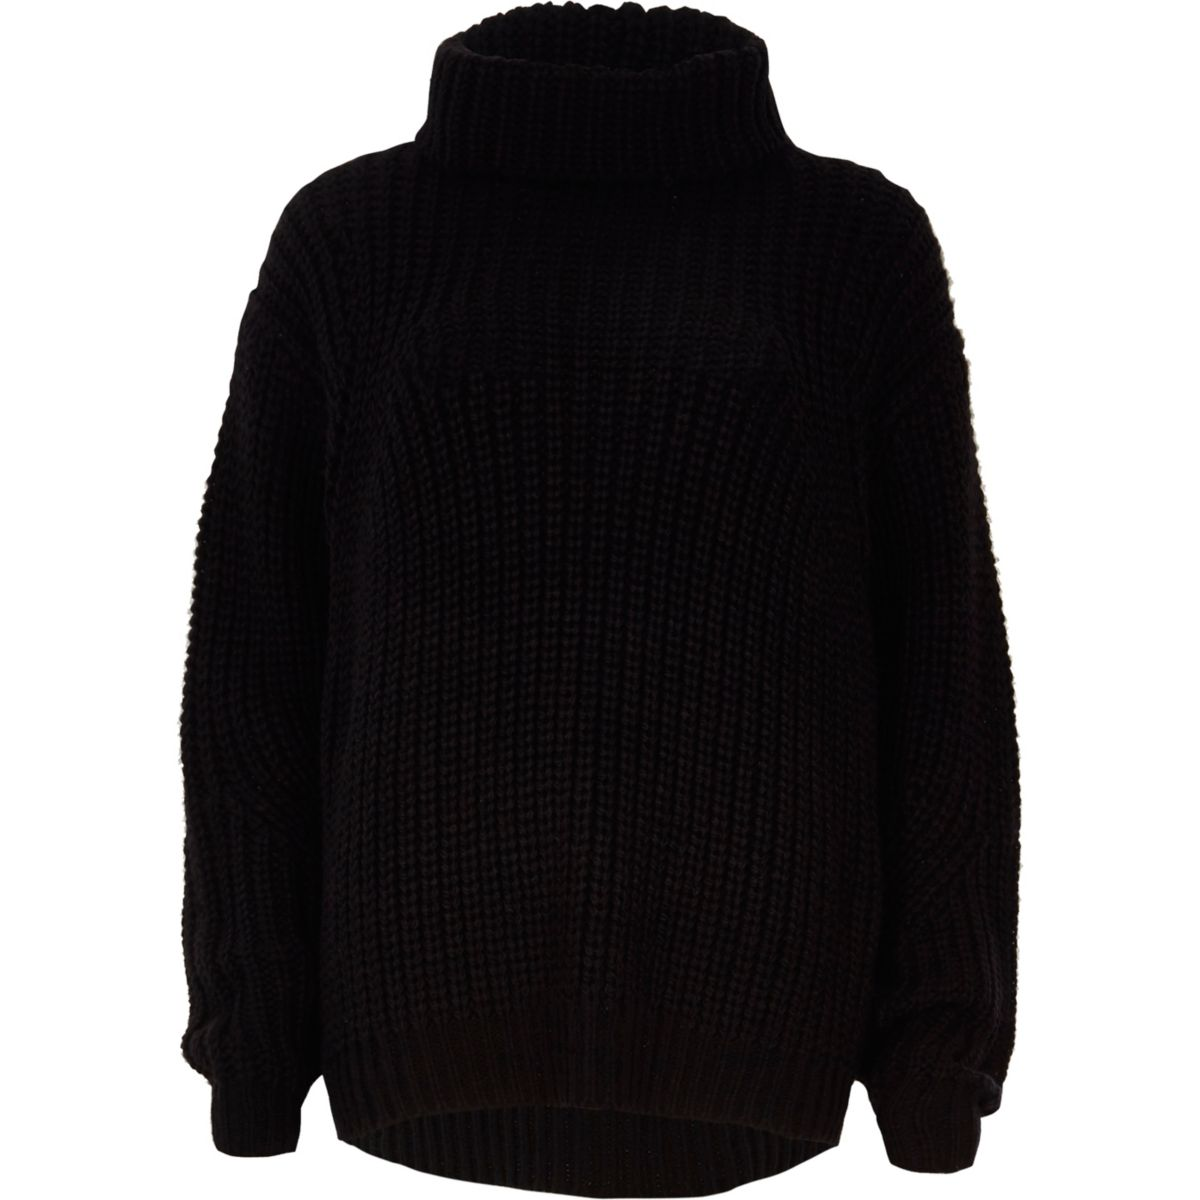 Black chunky roll neck fisherman jumper - Knitwear